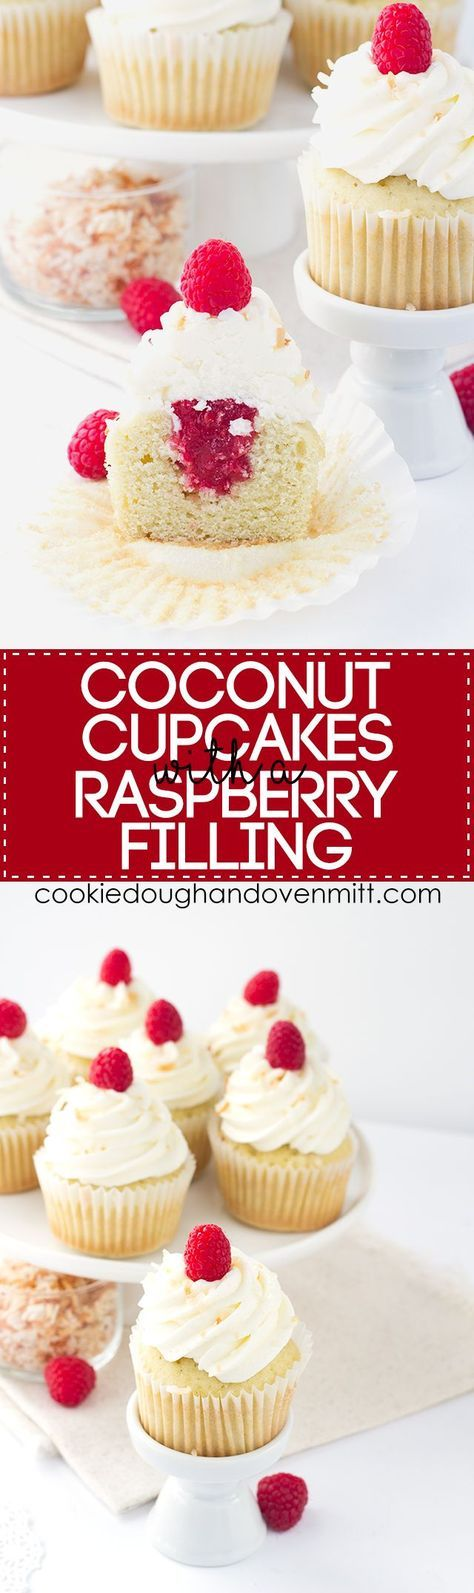 25 Best Ideas About Coconut Cupcakes On Pinterest